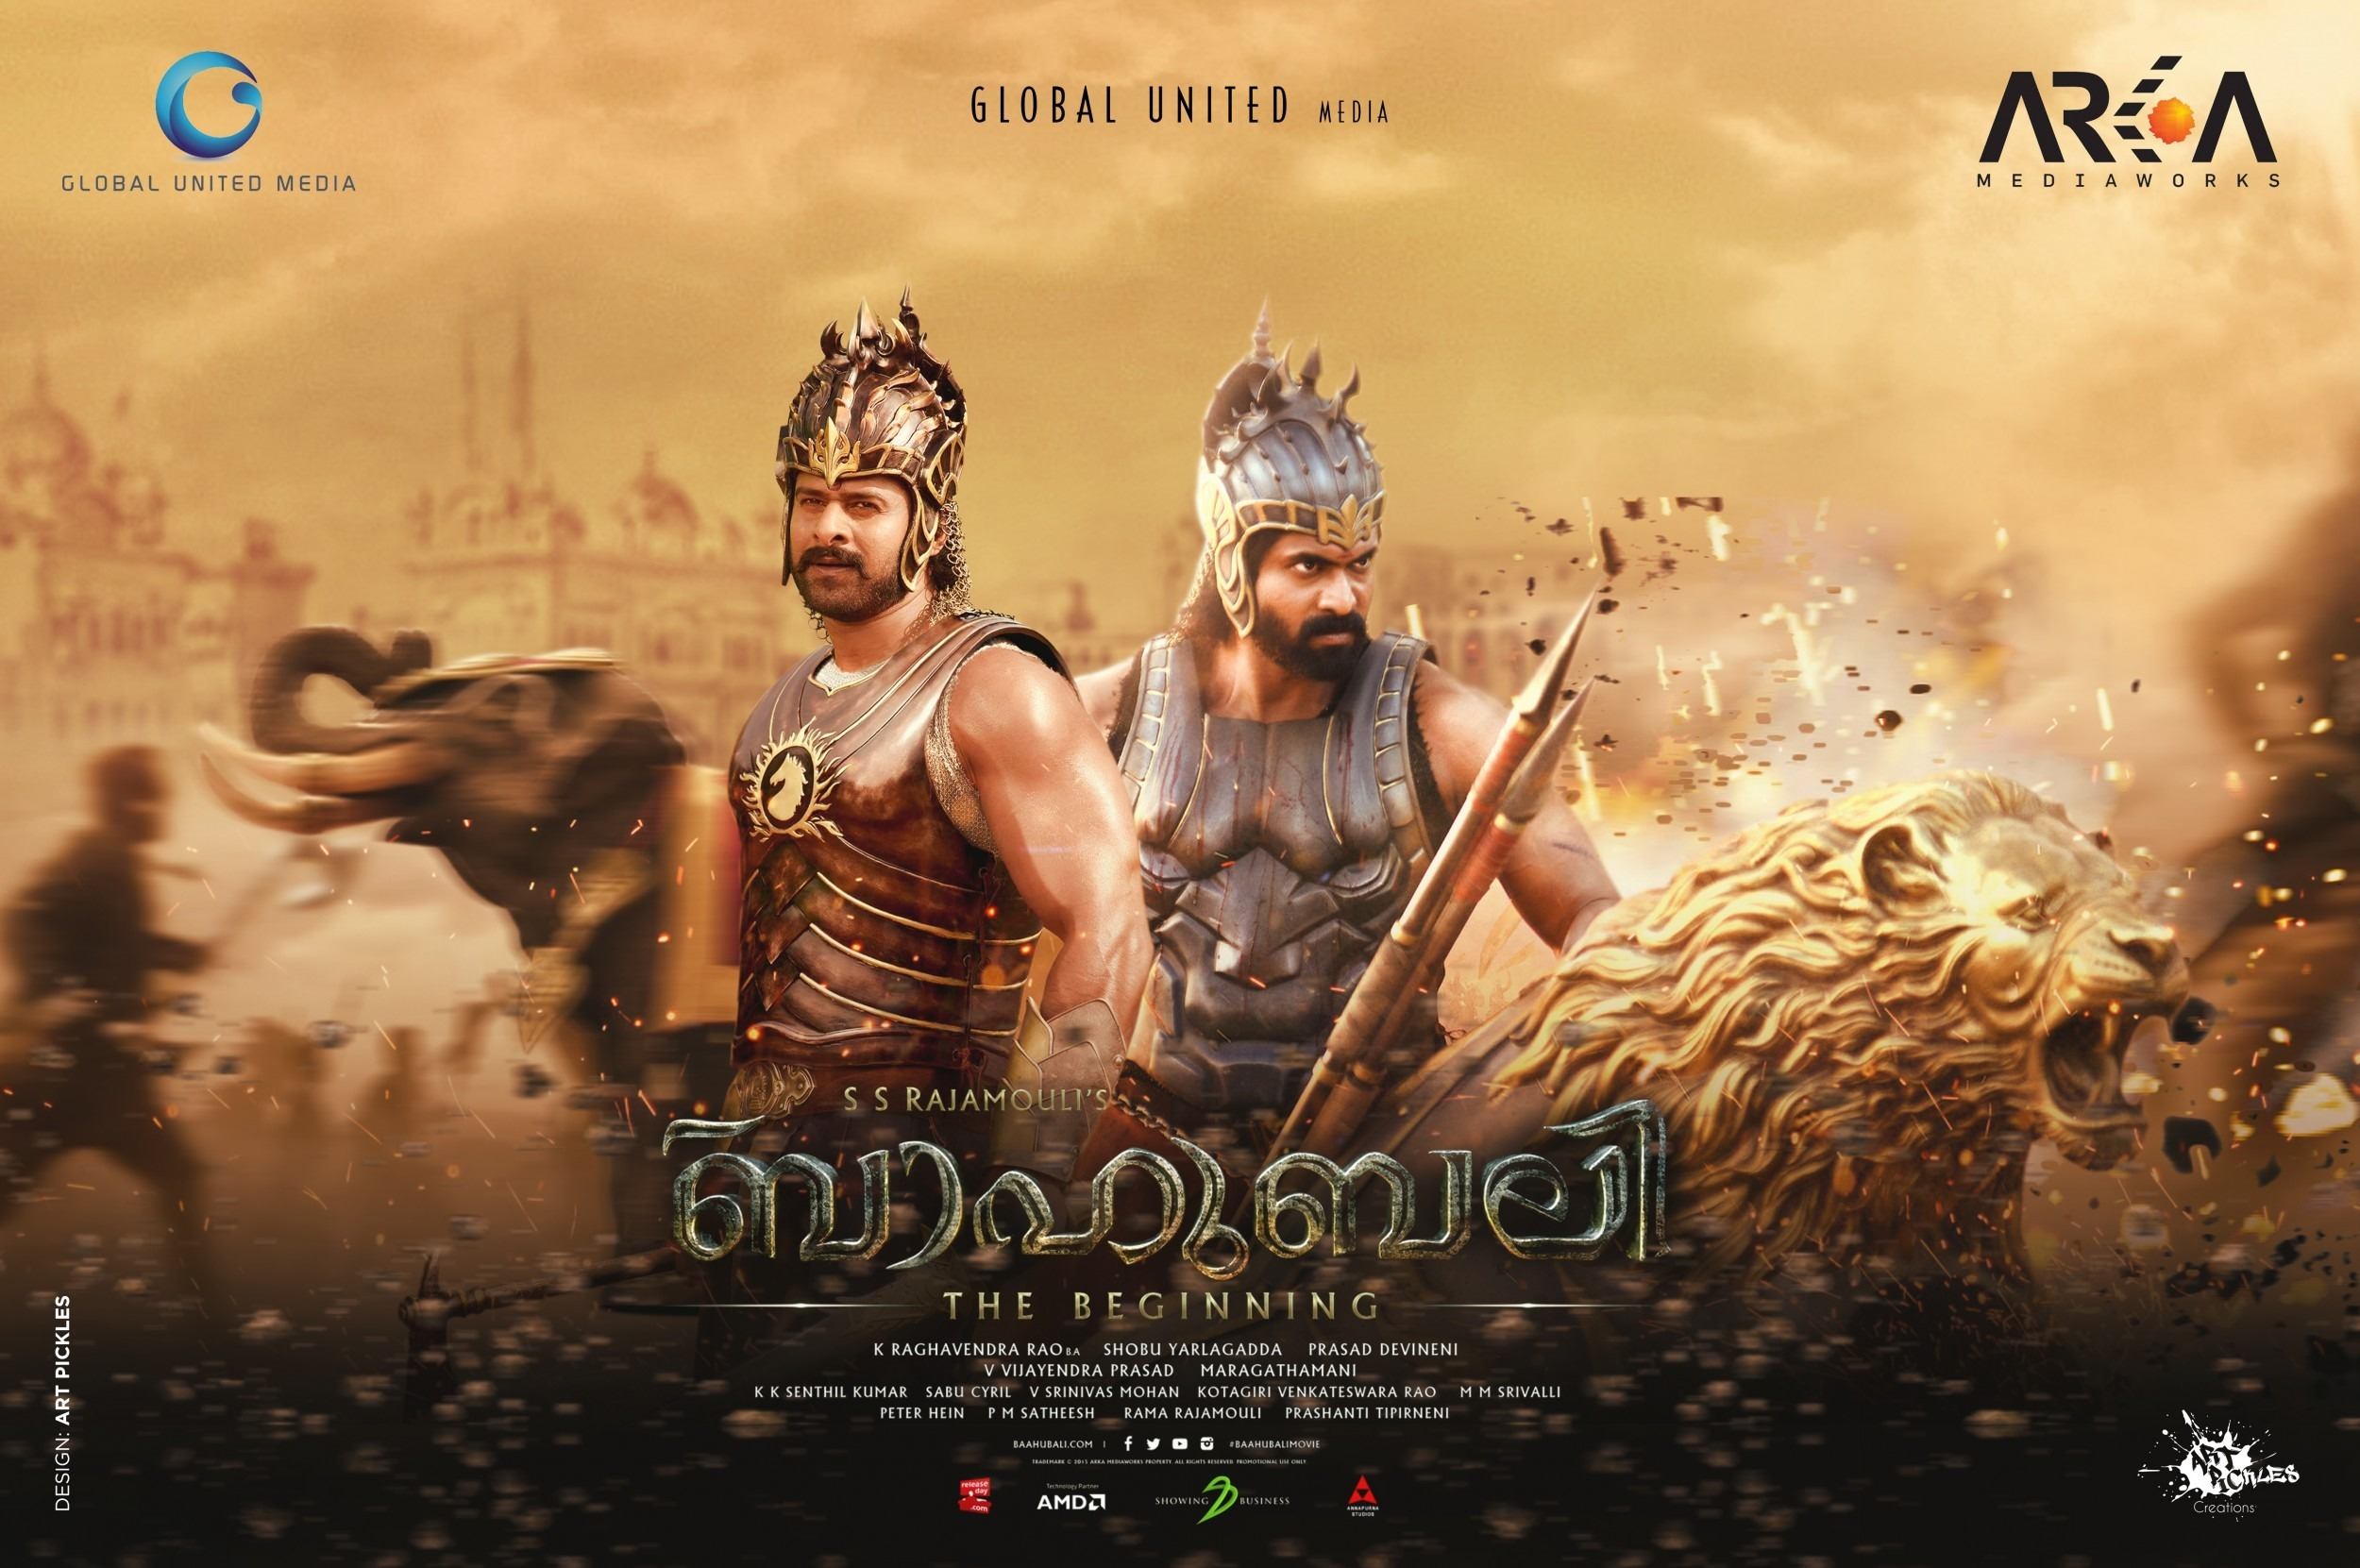 Baahubali: The Beginning wallpapers, Movie, HQ Baahubali